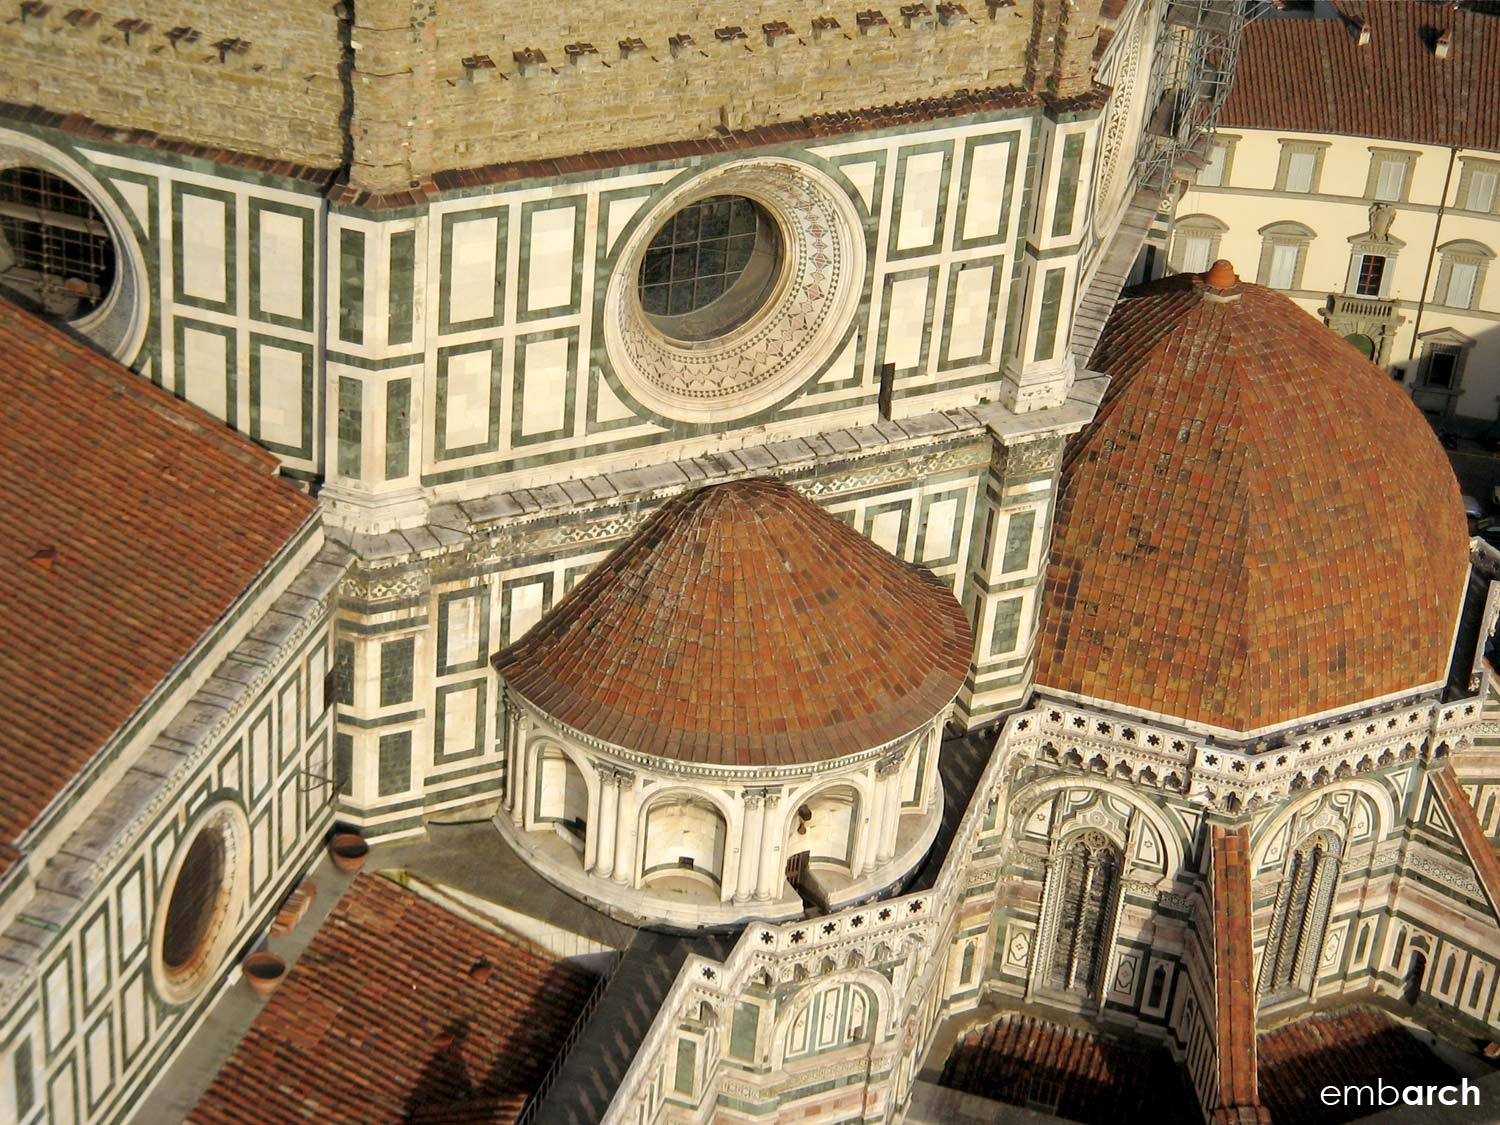 Florence Cathedral (Duomo) - exterior roofscape